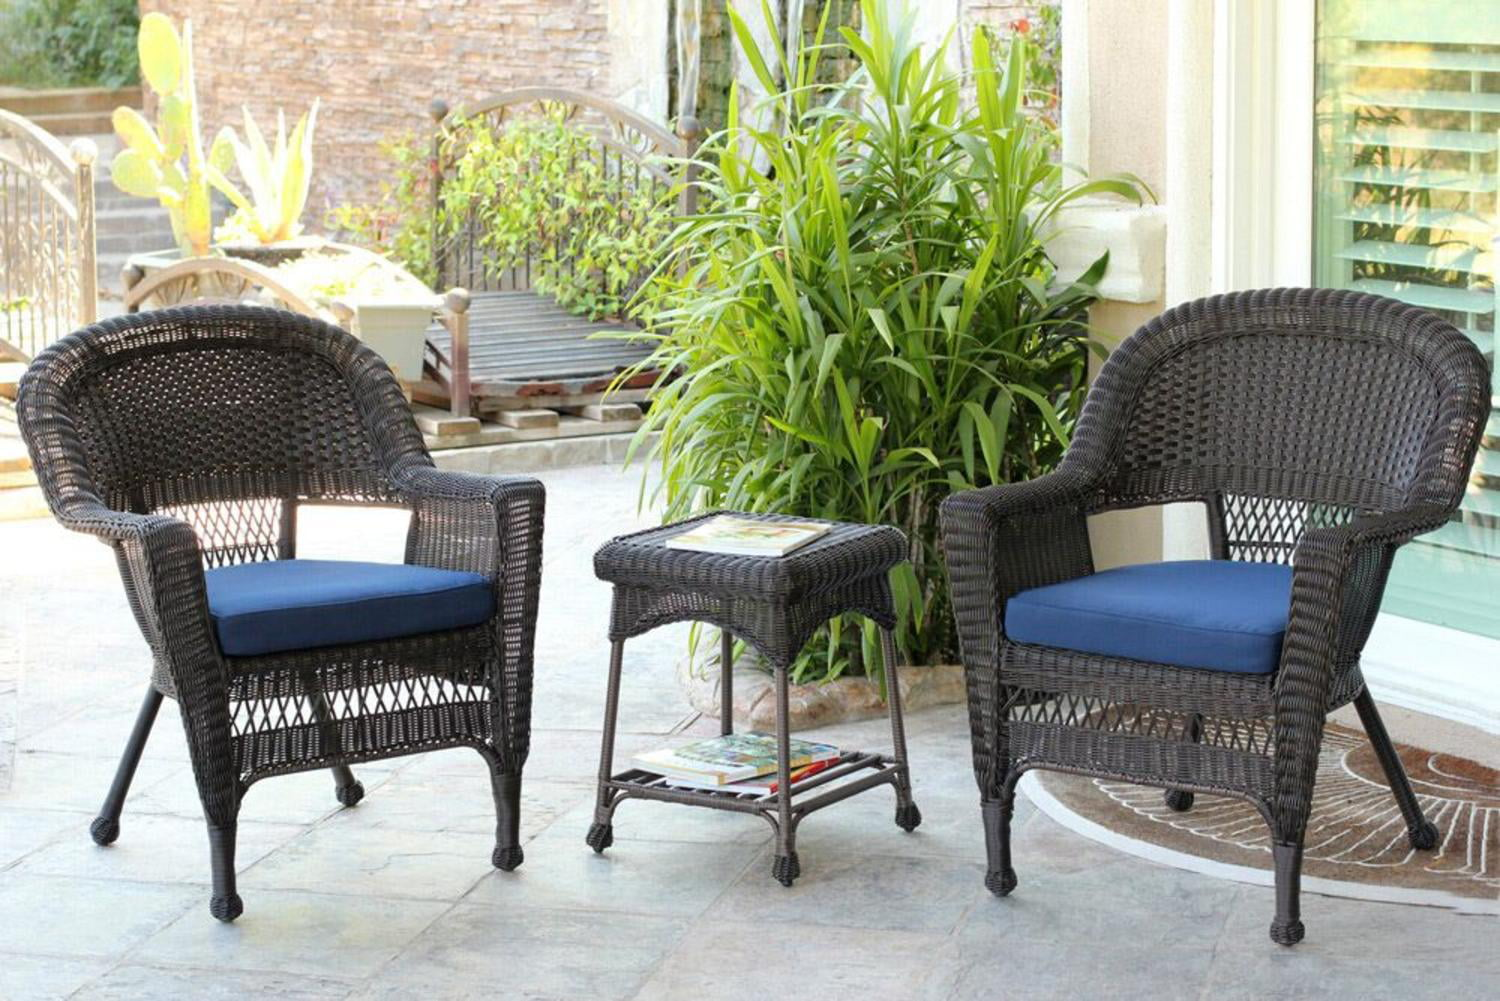 Costway 4 Pc Patio Rattan Wicker Chair Sofa Table Set Outdoor Garden